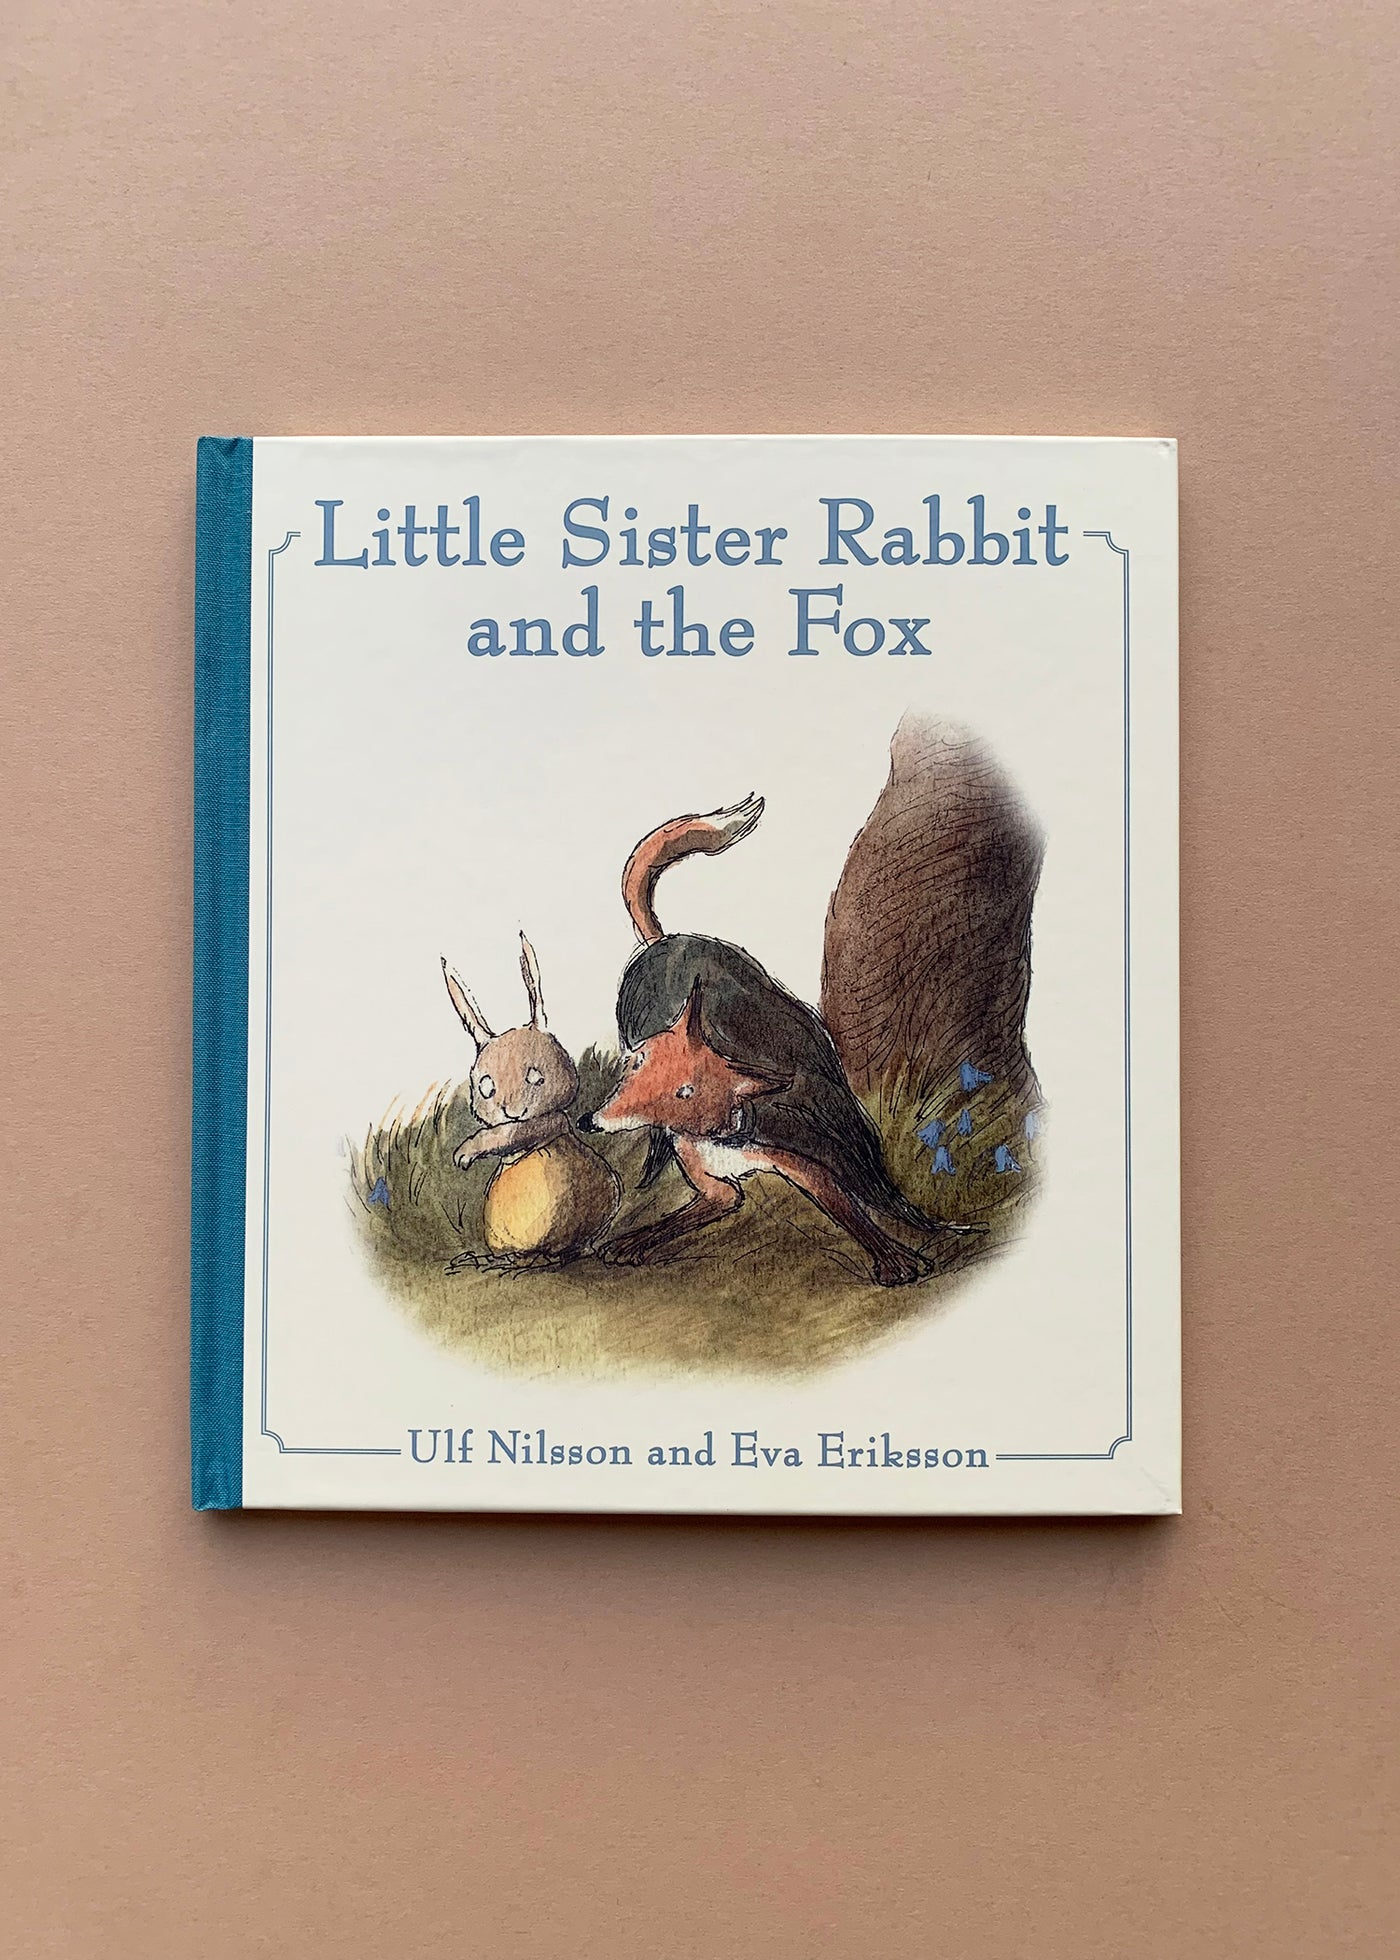 Little Sister Rabbit and the Fox by Ulf Nilsson